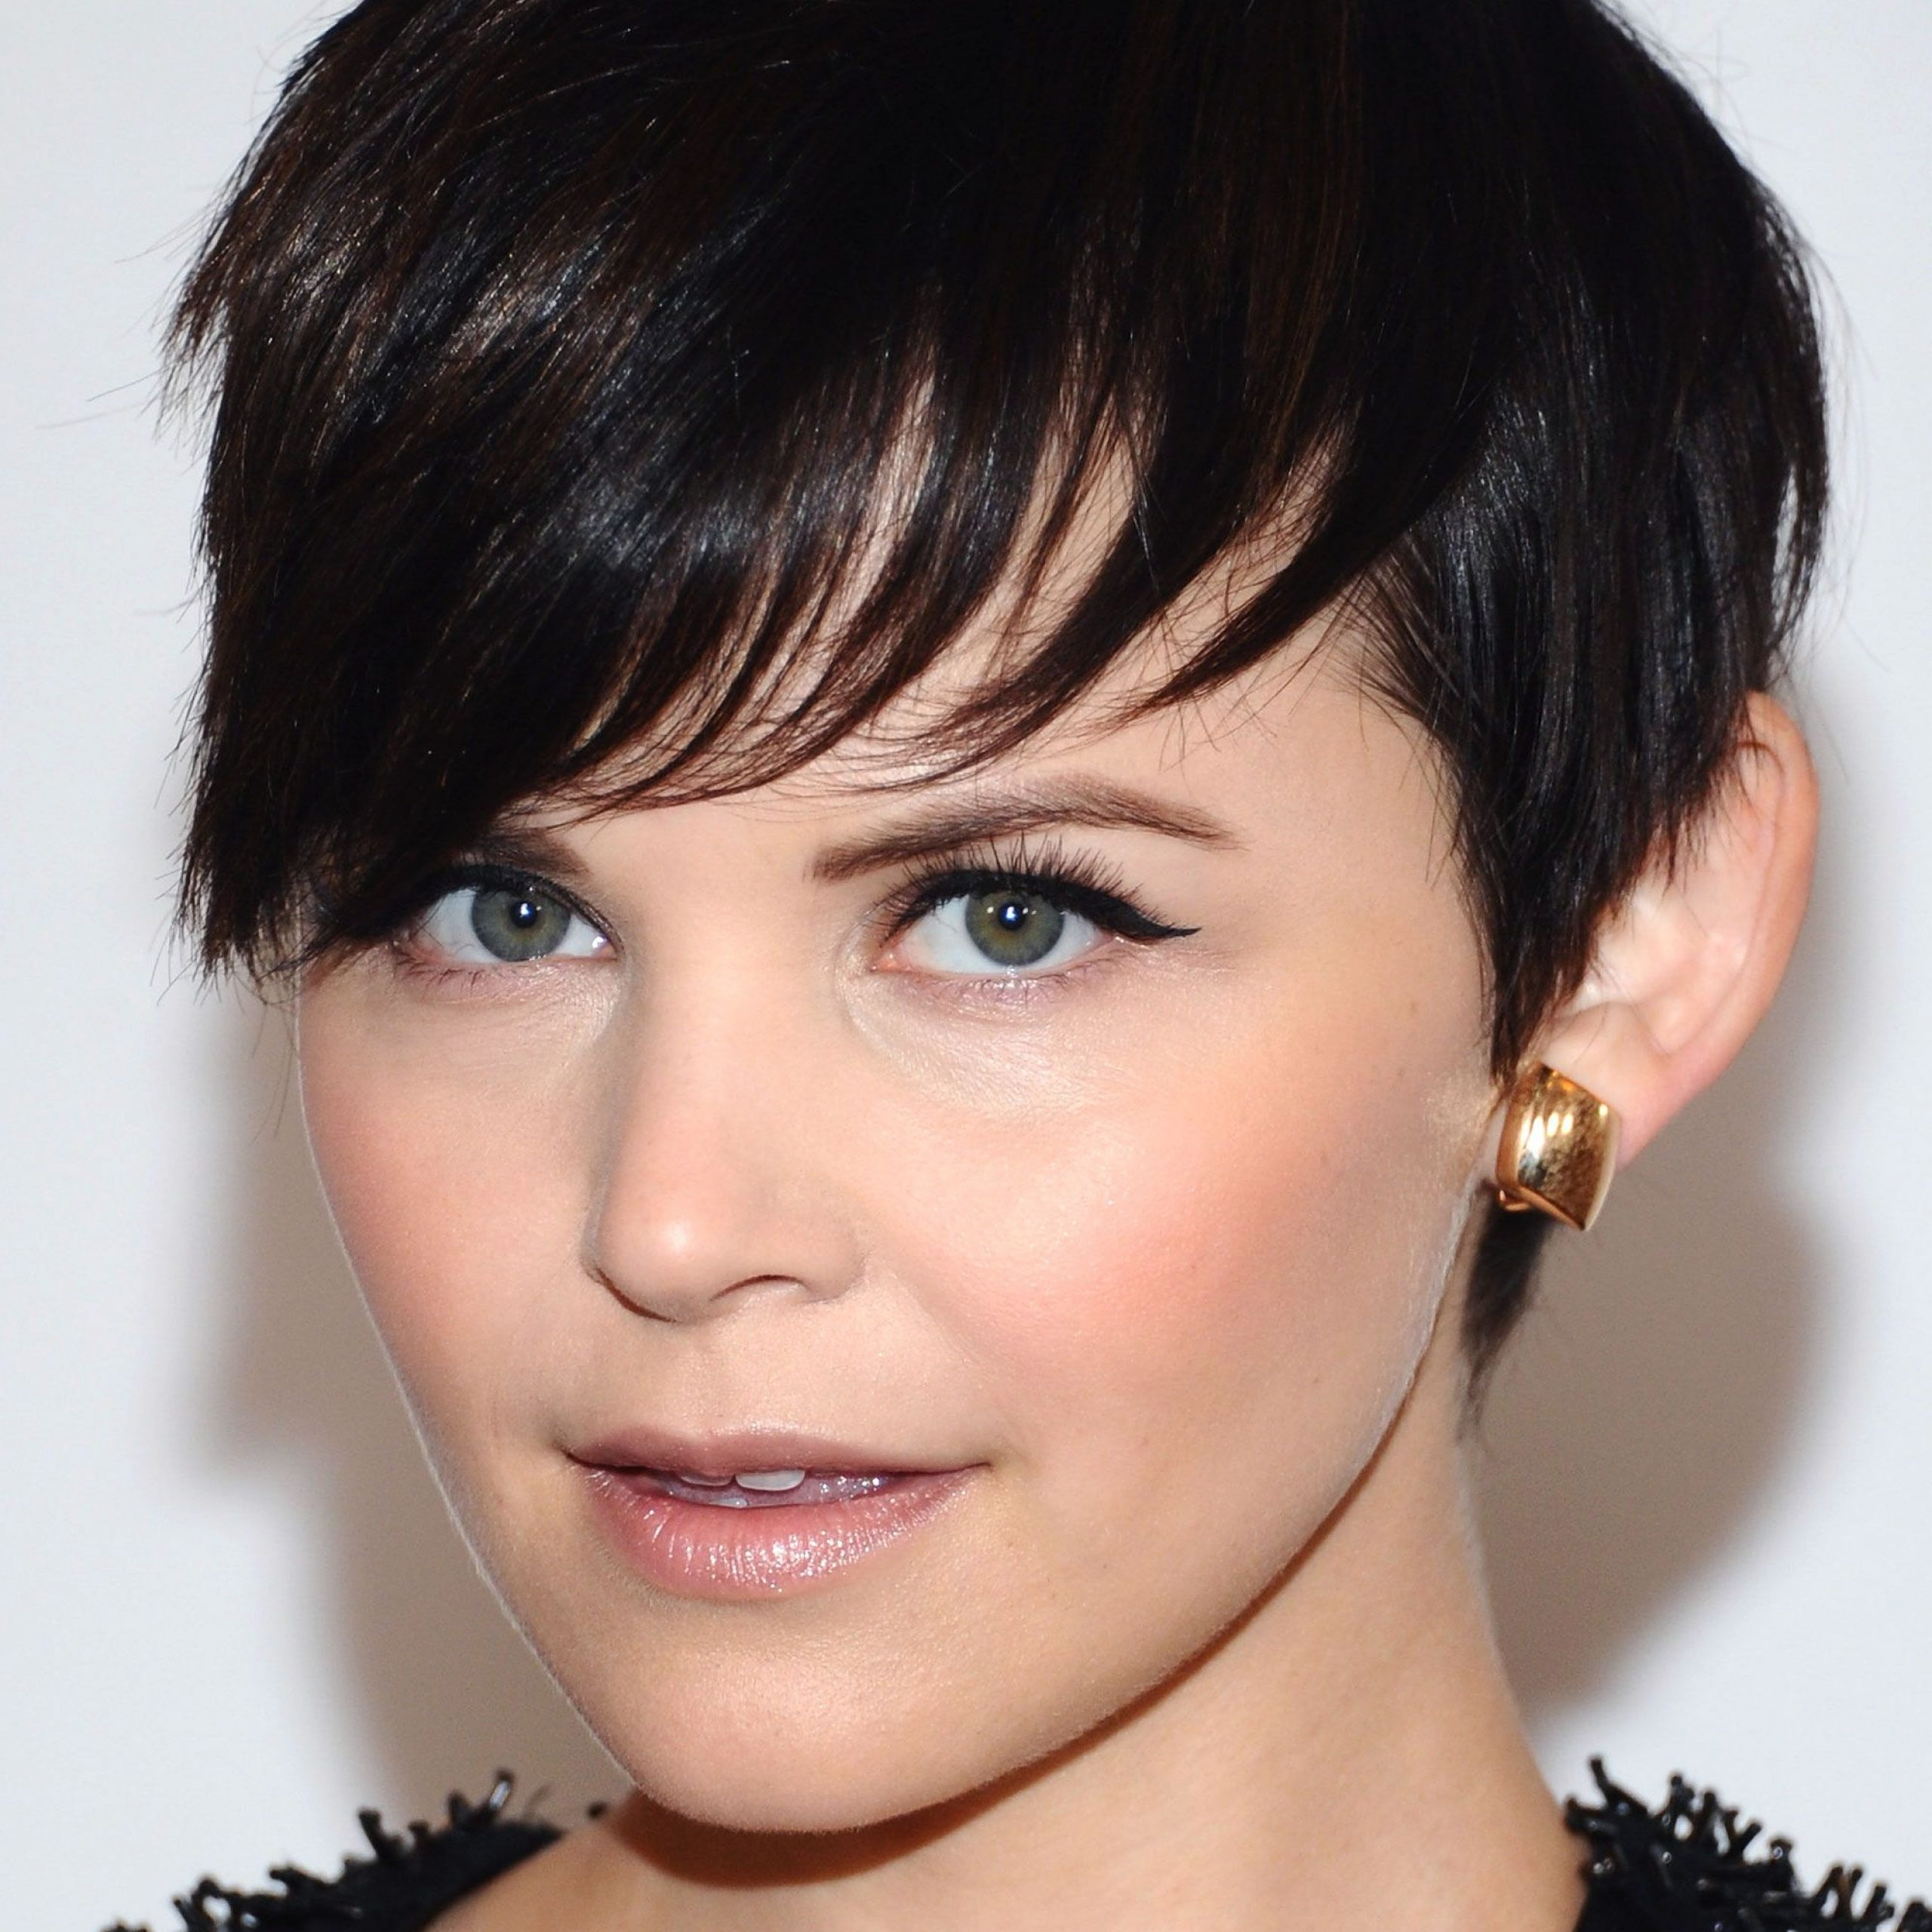 60+ Pixie Cuts We Love For 2020 – Short Pixie Hairstyles In Current Choppy Pixie Haircuts With Short Bangs (View 7 of 20)